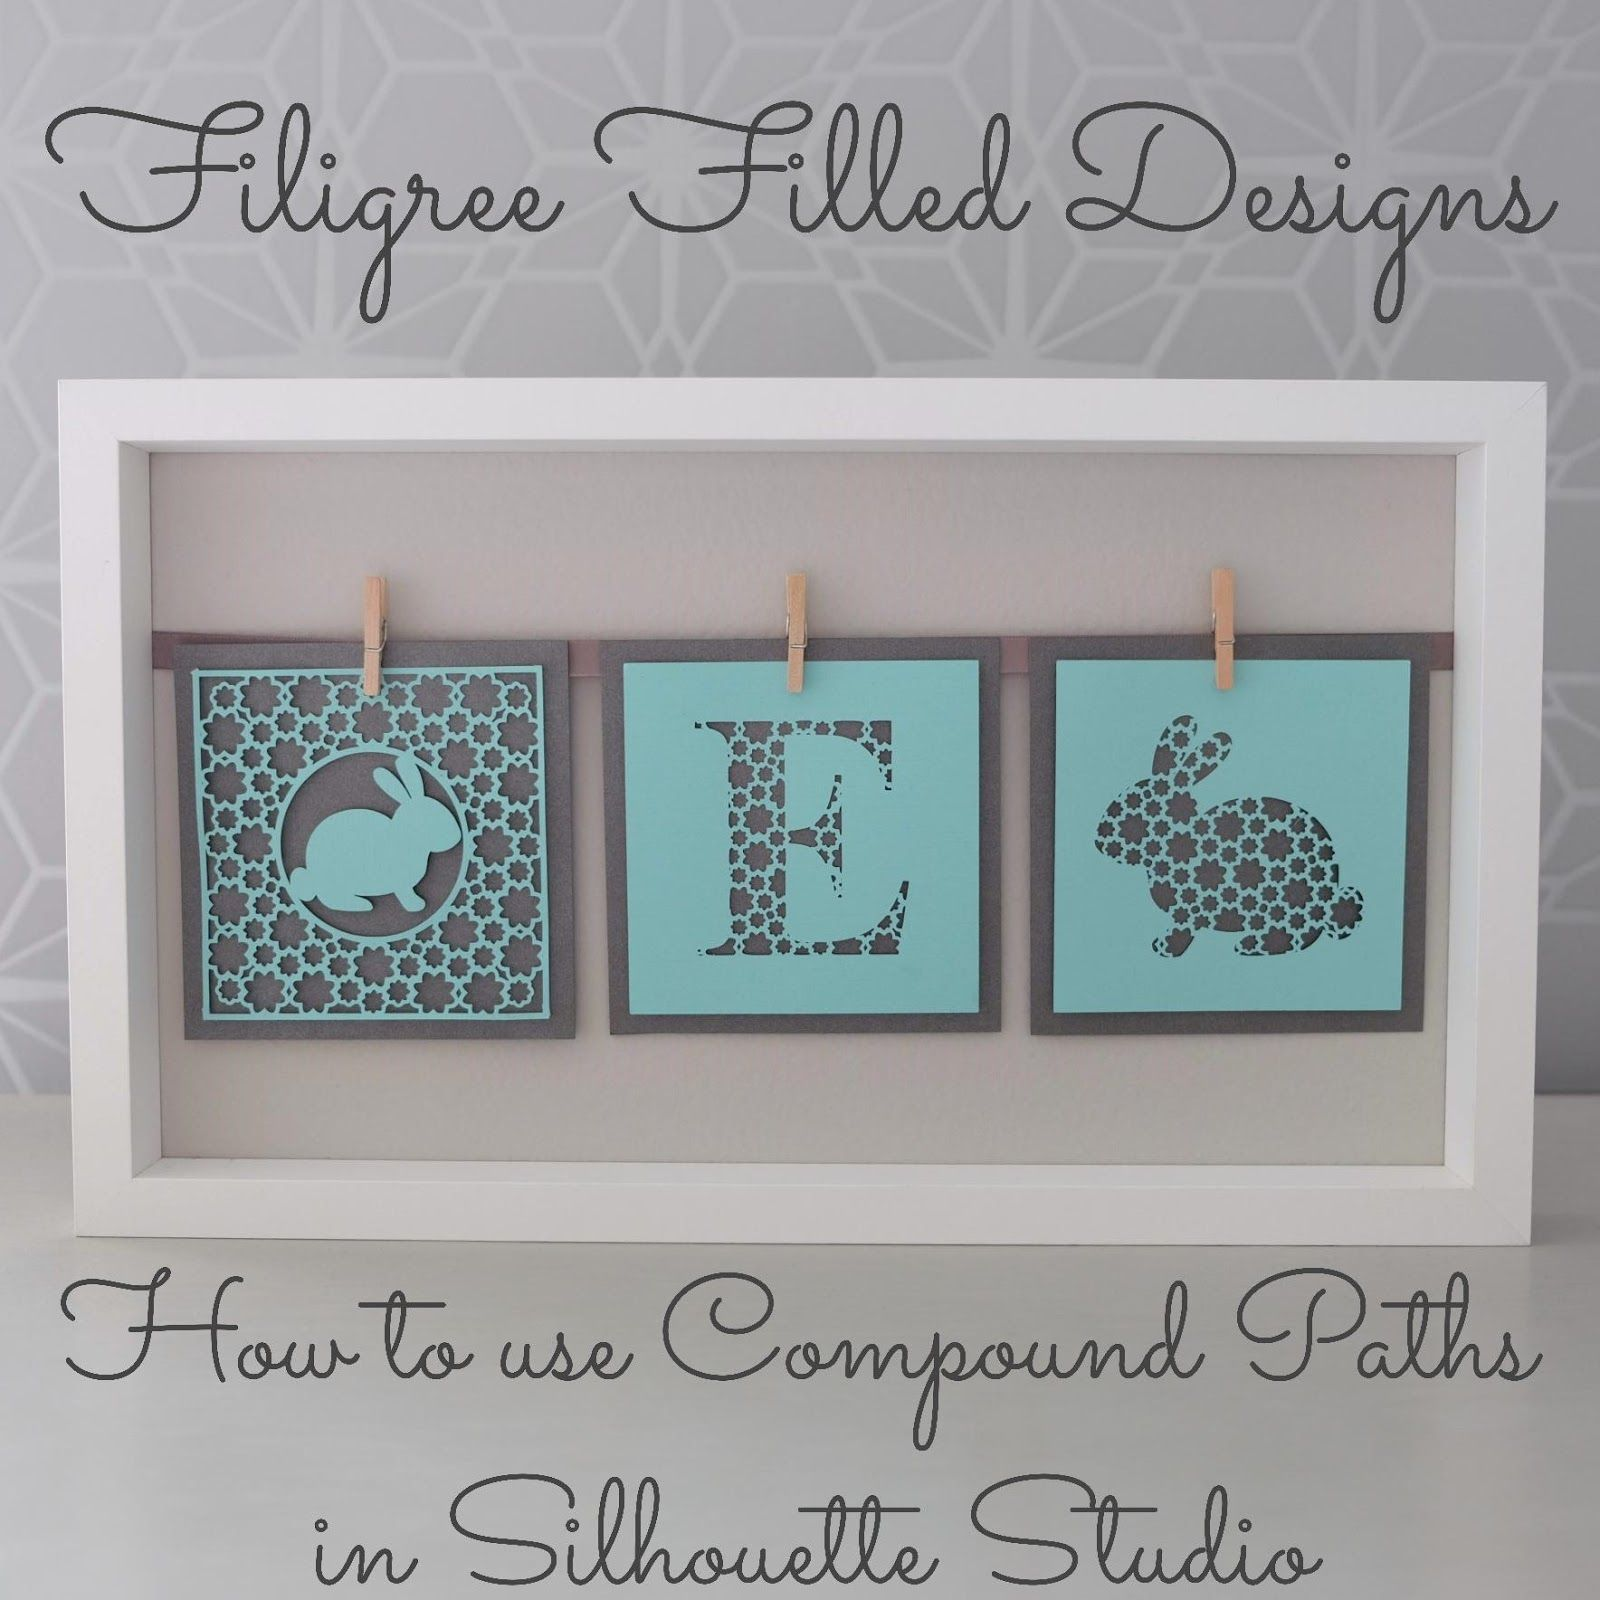 Filigree fill Silhouette tutorial by Nadine Muir for Silhouette UK blog